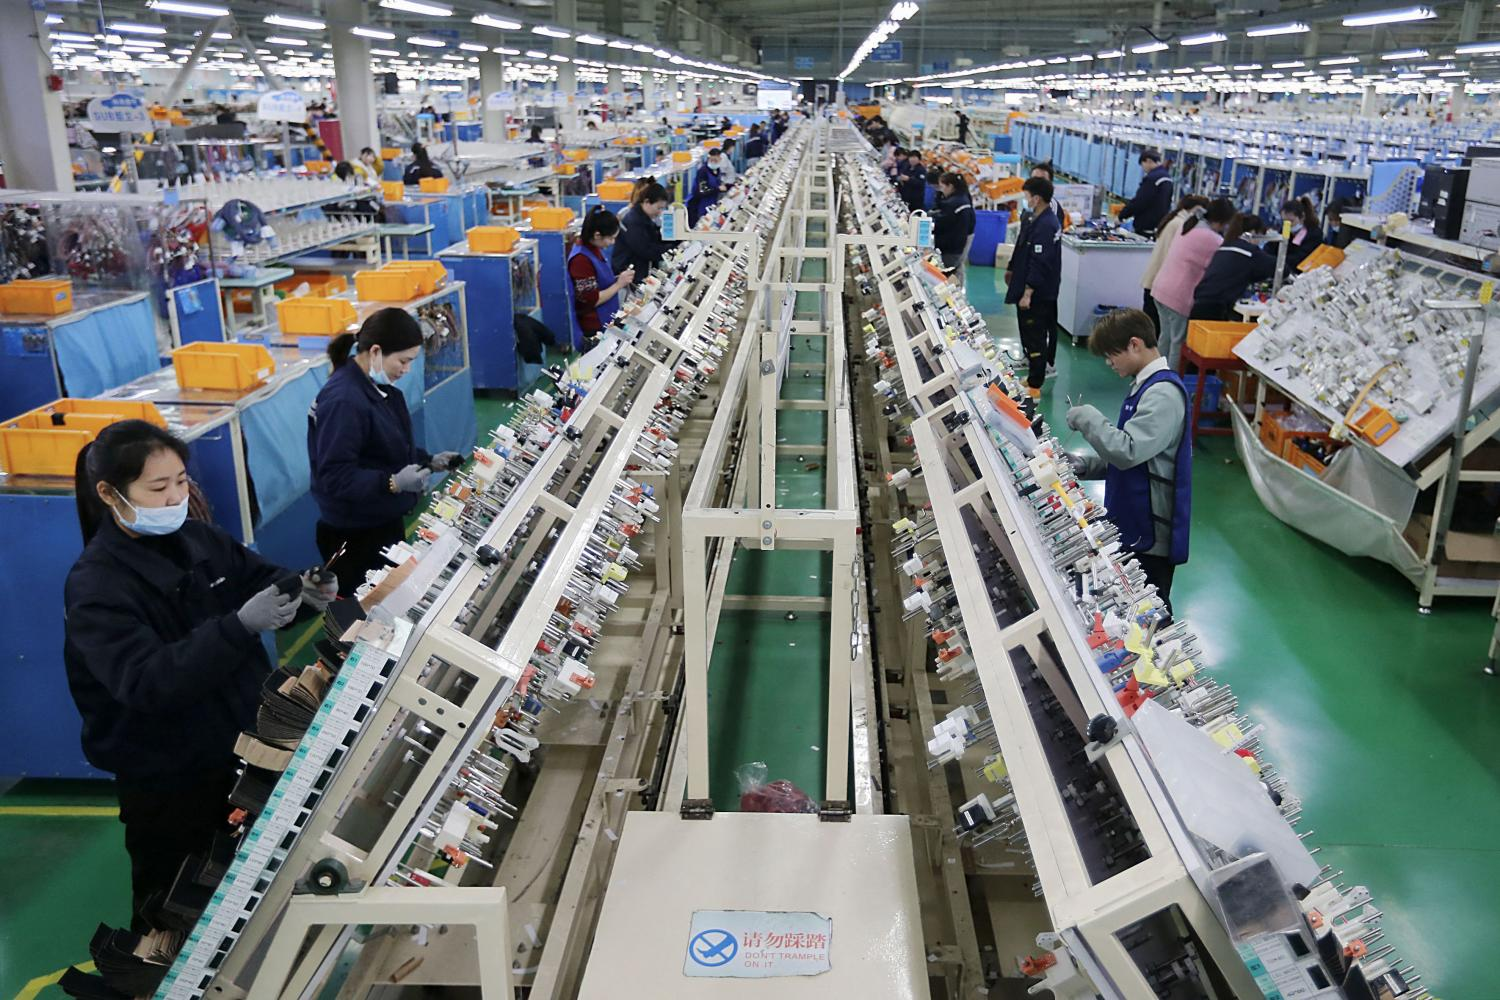 Workers on a wire harness production line at a factory in Huaibei, China in March.(Photo: STR/AFP)